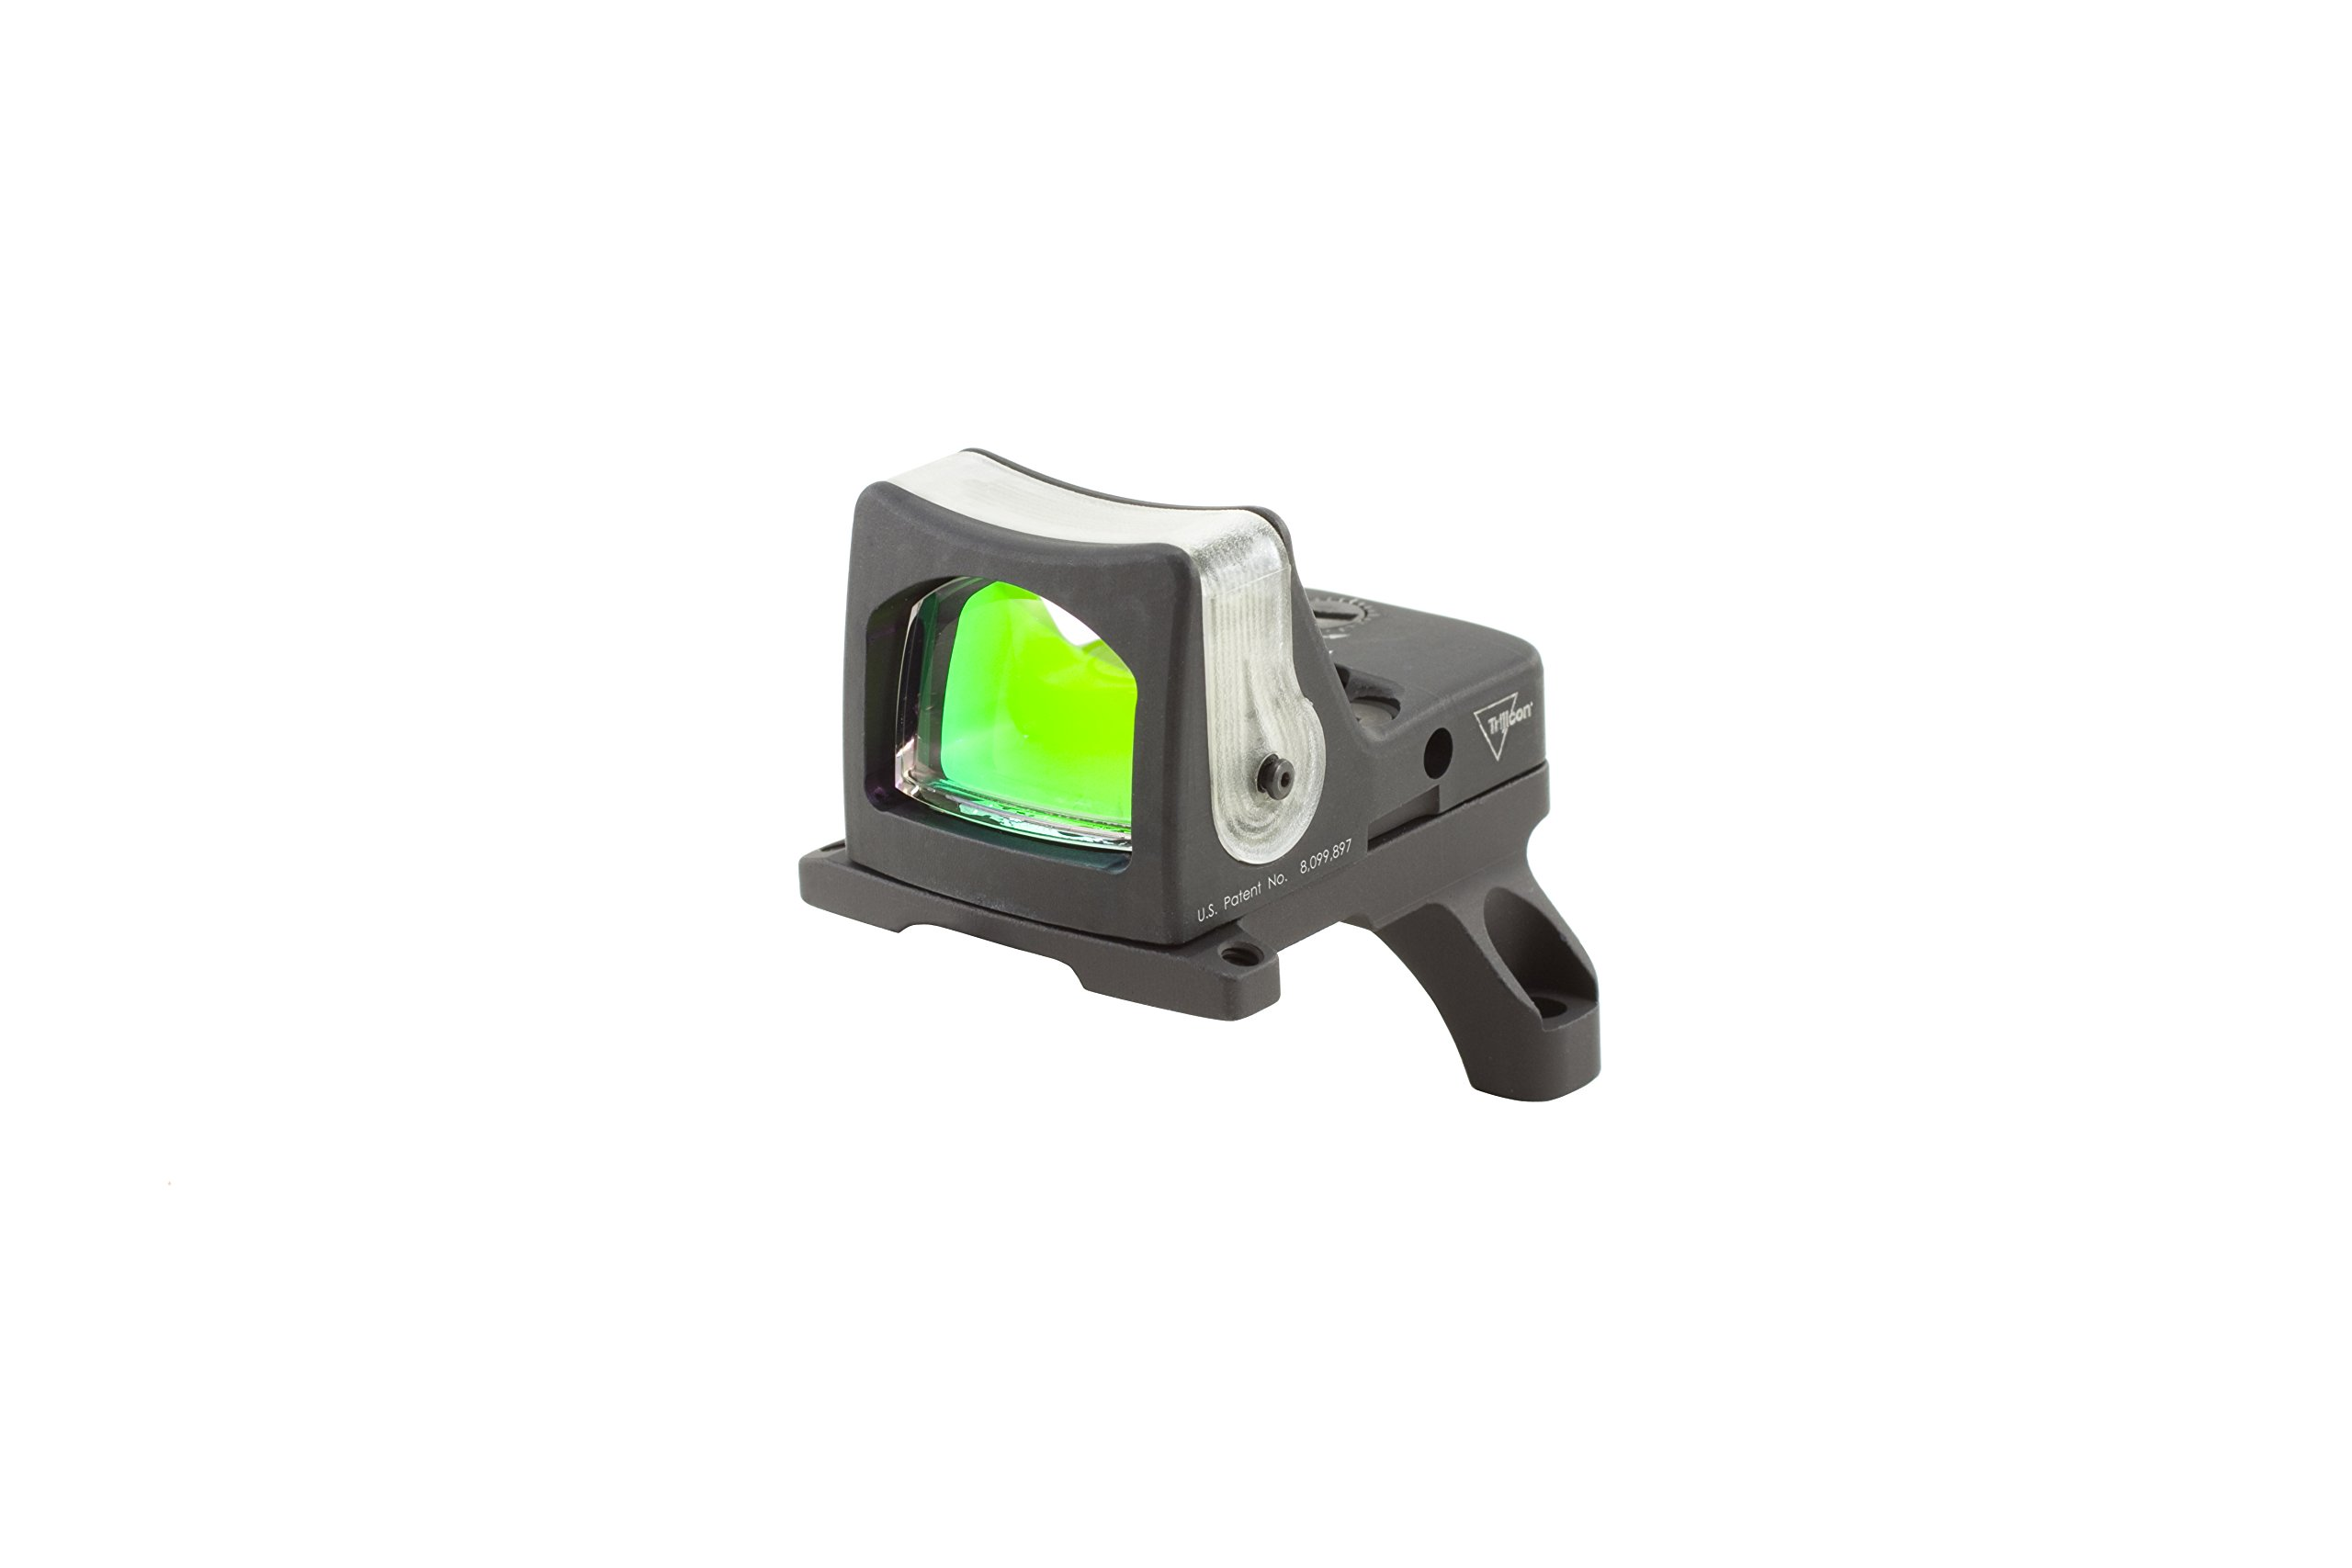 Trijicon RM04-35 RMR 7 MOA Dual-Illuminated Amber Dot Sight with RM35 Full Size ACOG Mount with Bosses by Trijicon (Image #4)